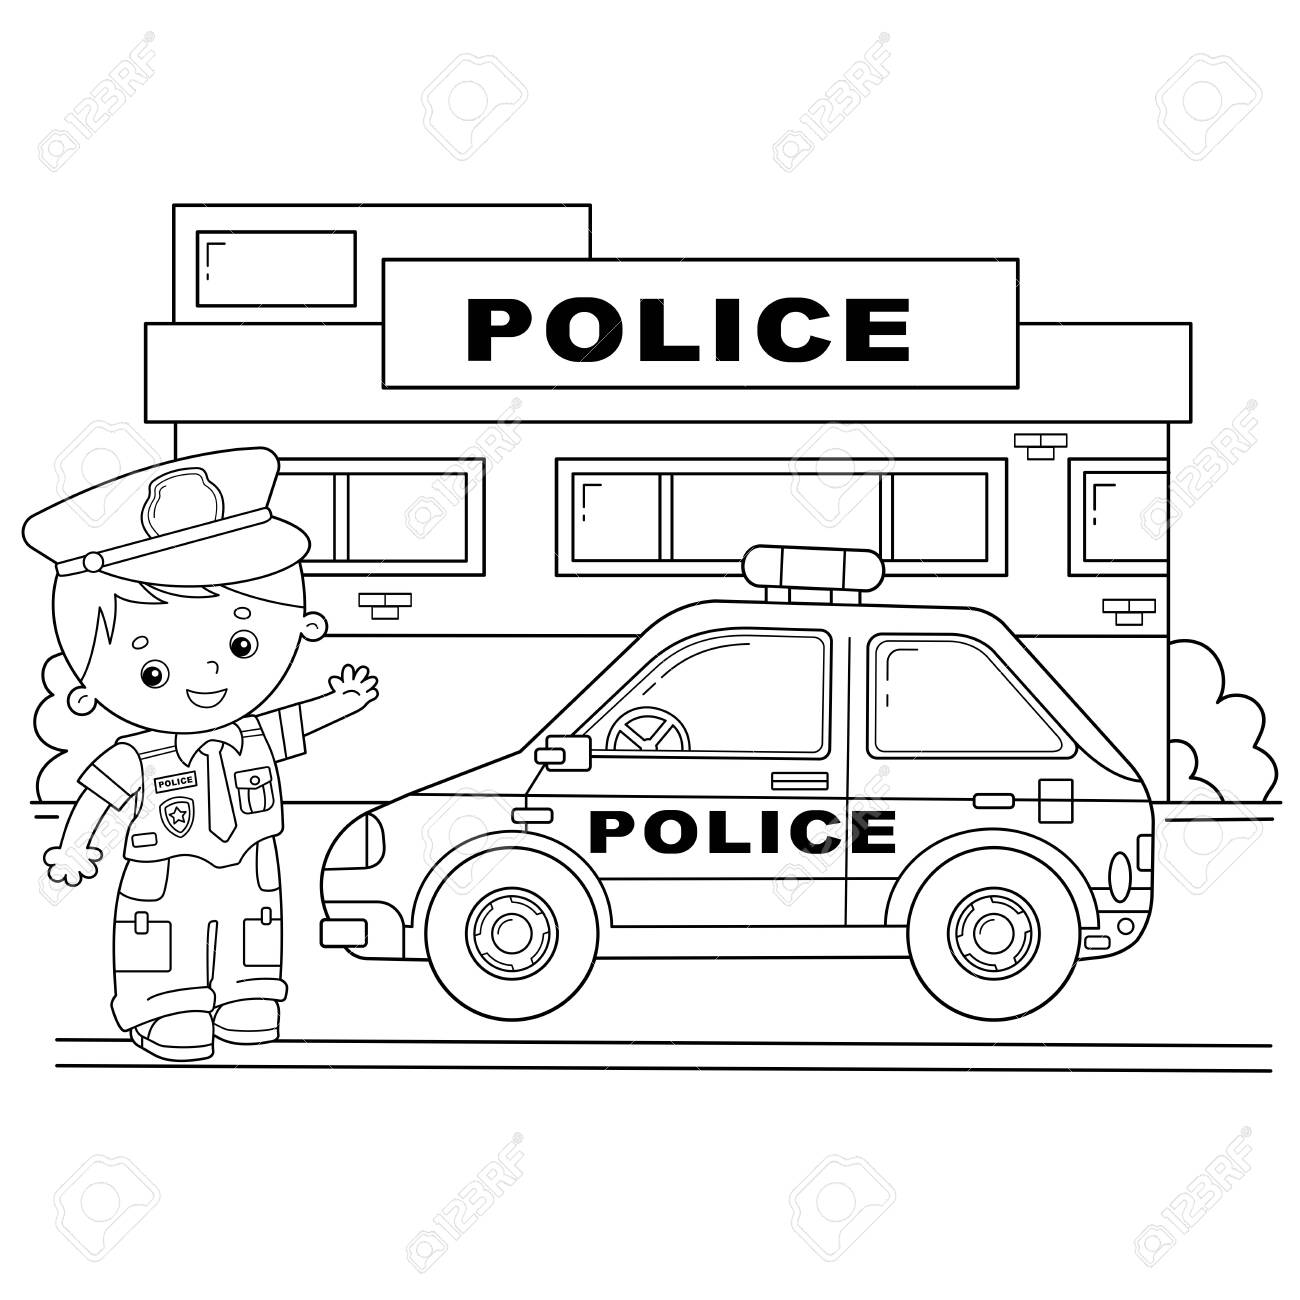 Police Car Coloring Pictures For Kids Tag: 21 Police Officer ... | 1300x1300